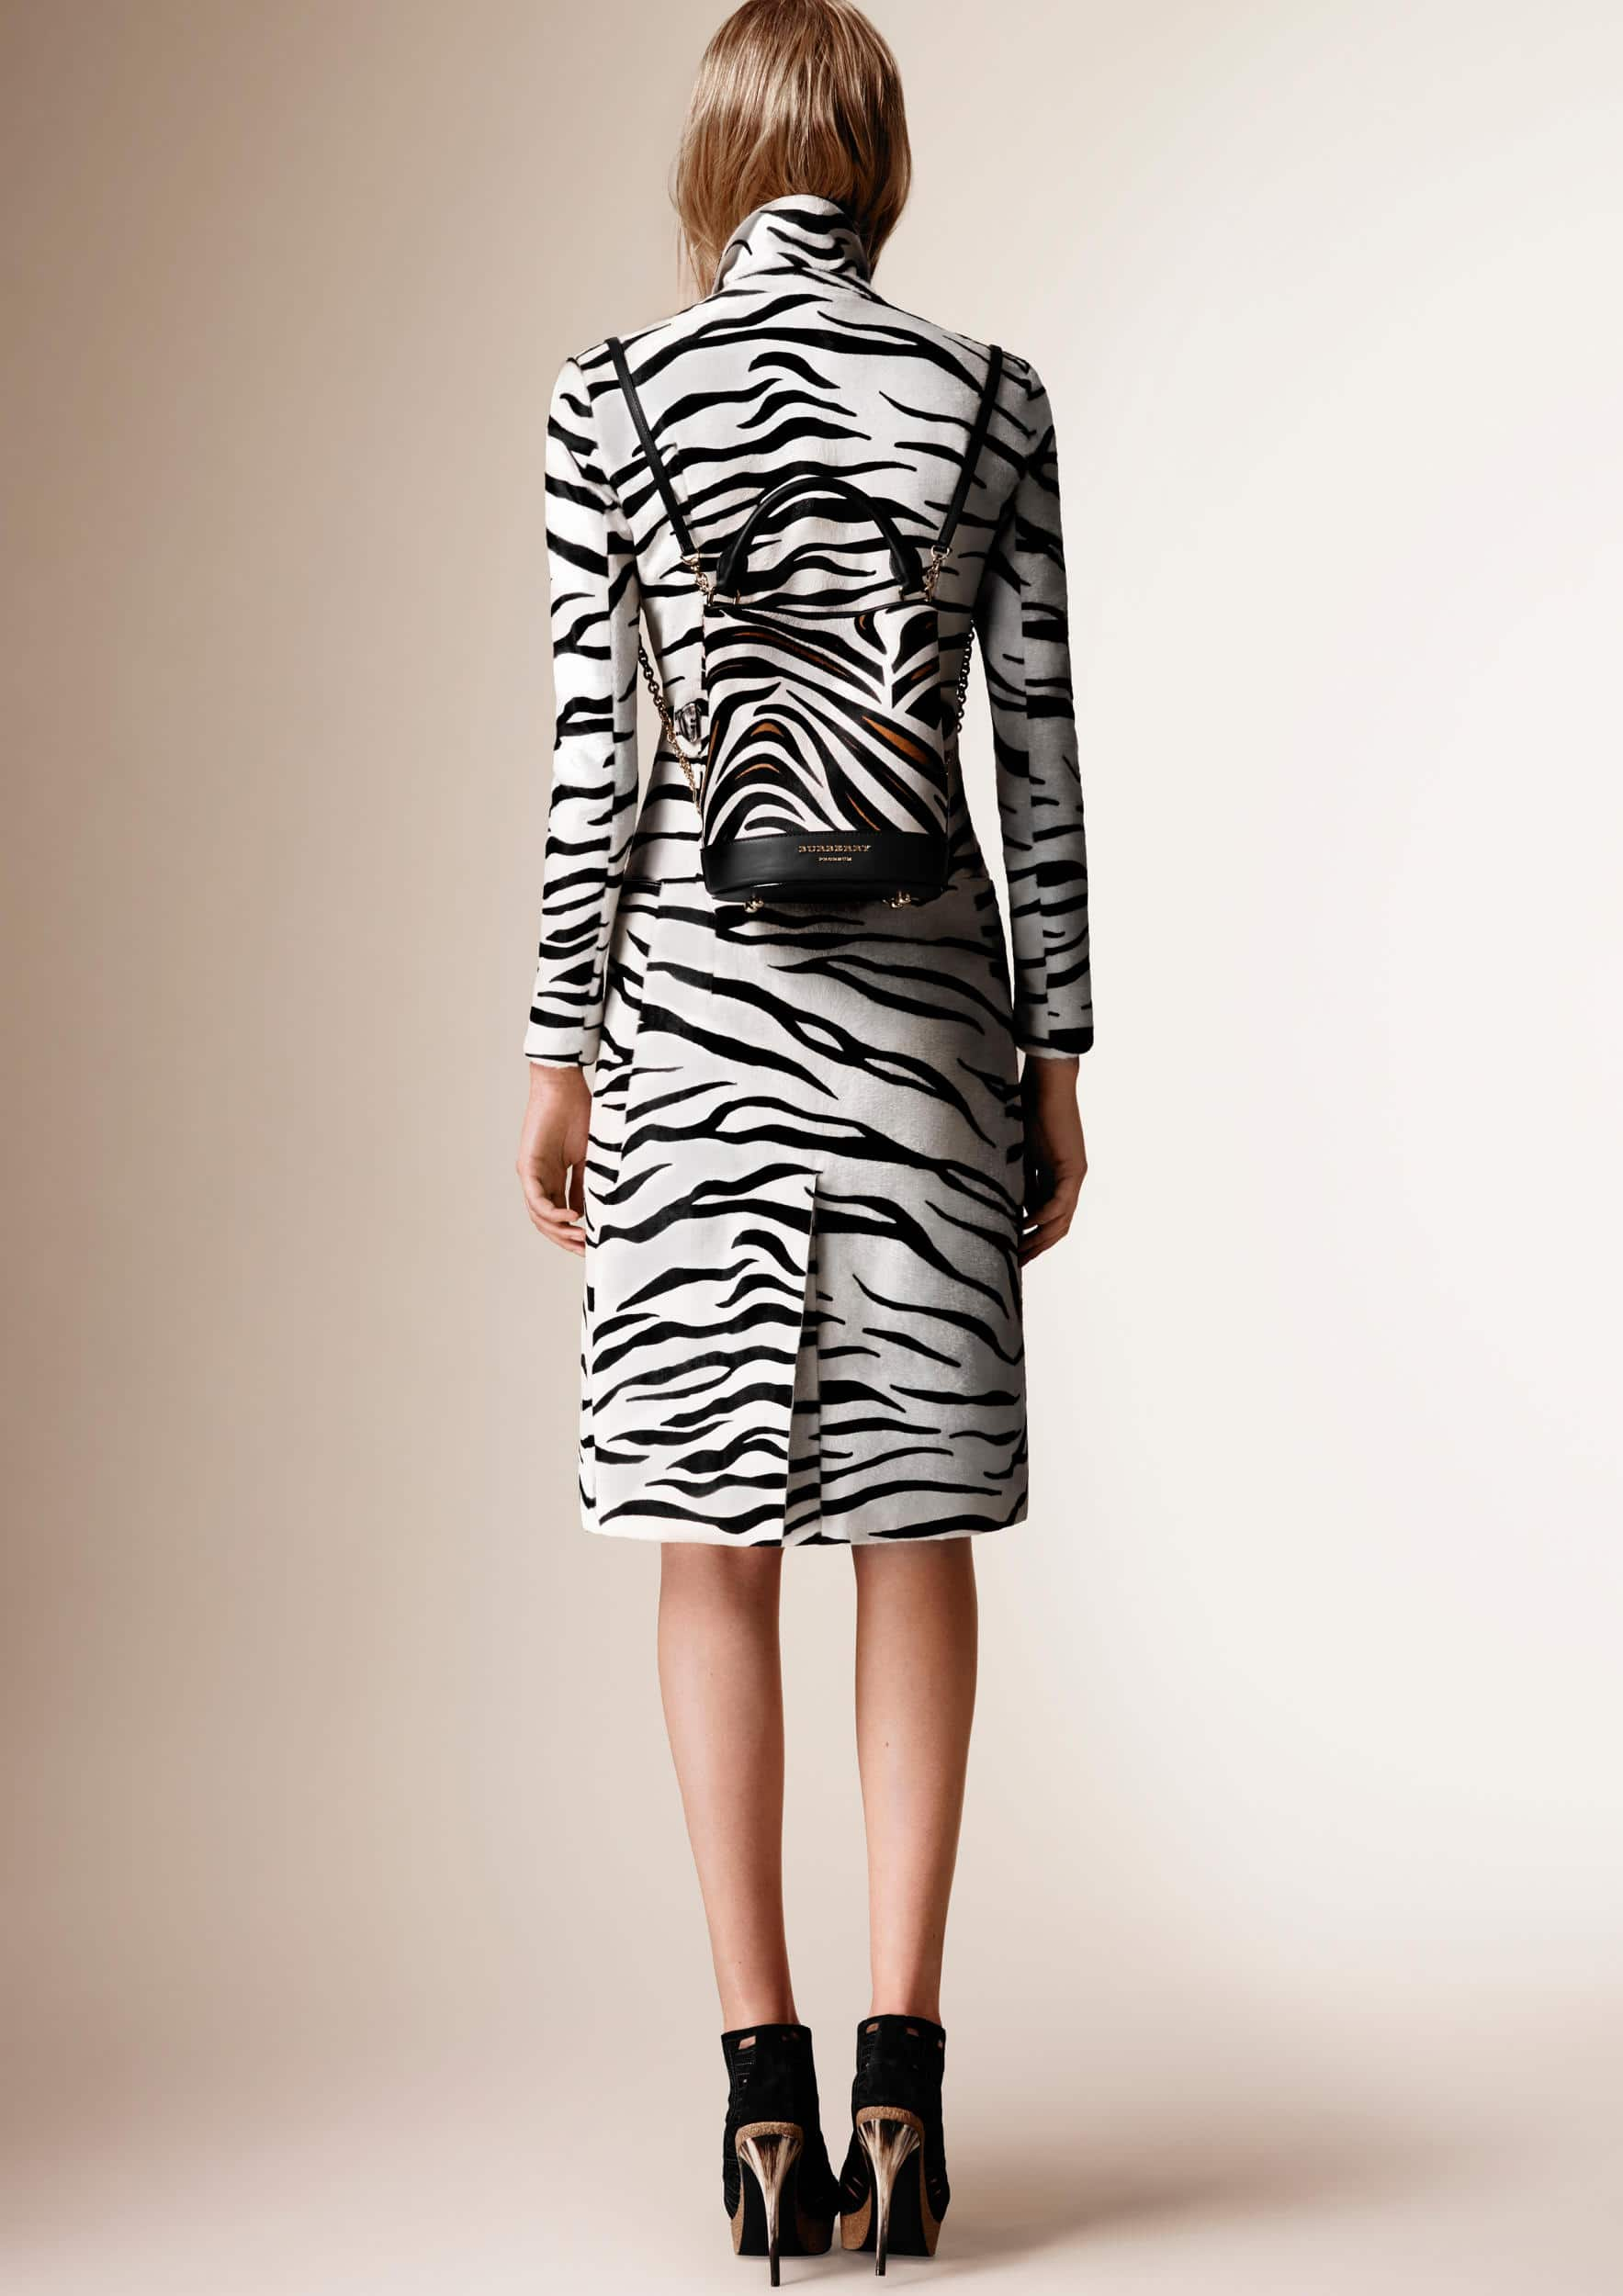 burberry-resort-collection-2016-18